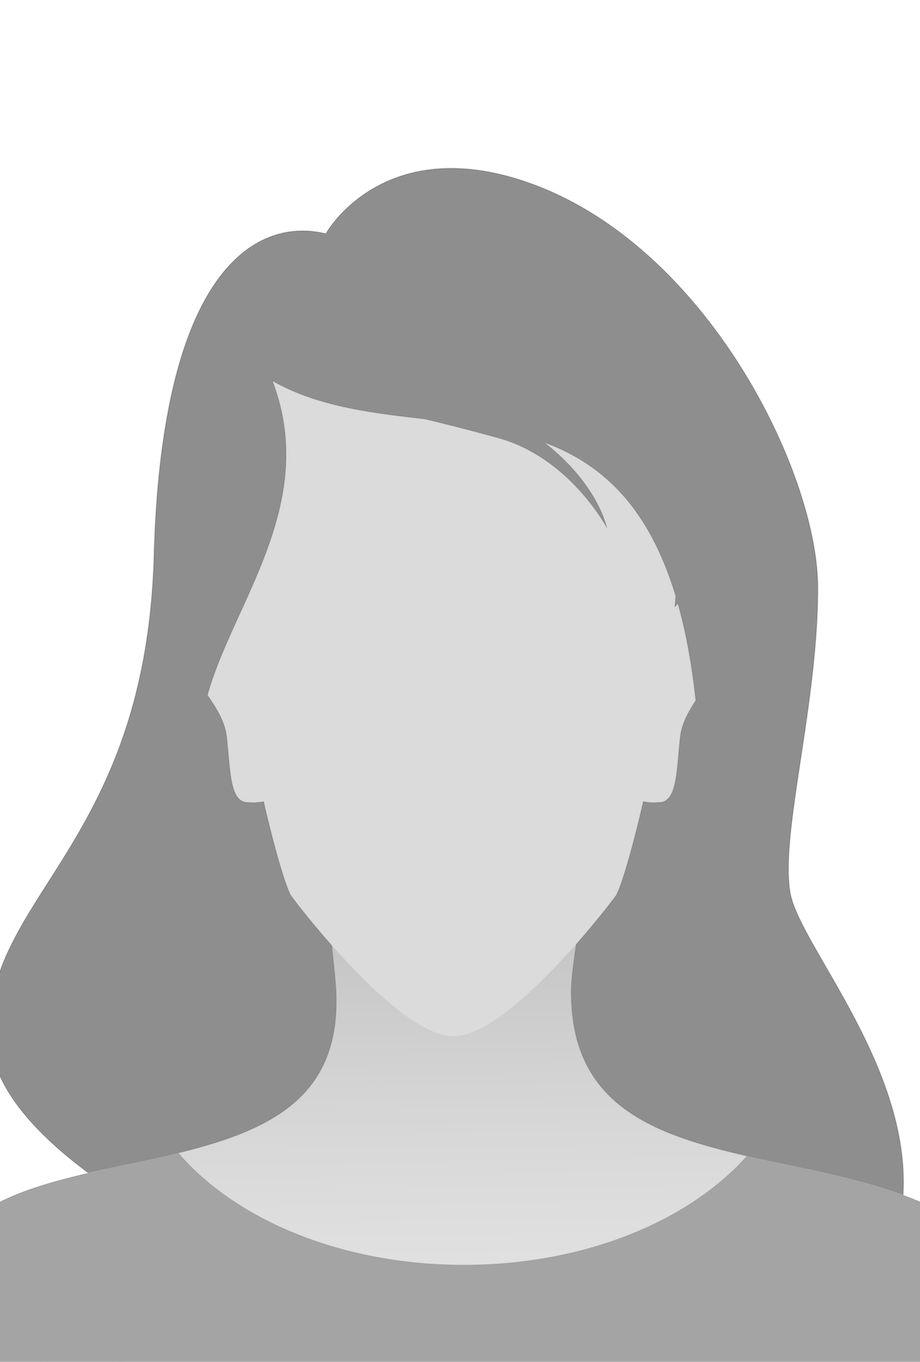 Female Image Placeholder